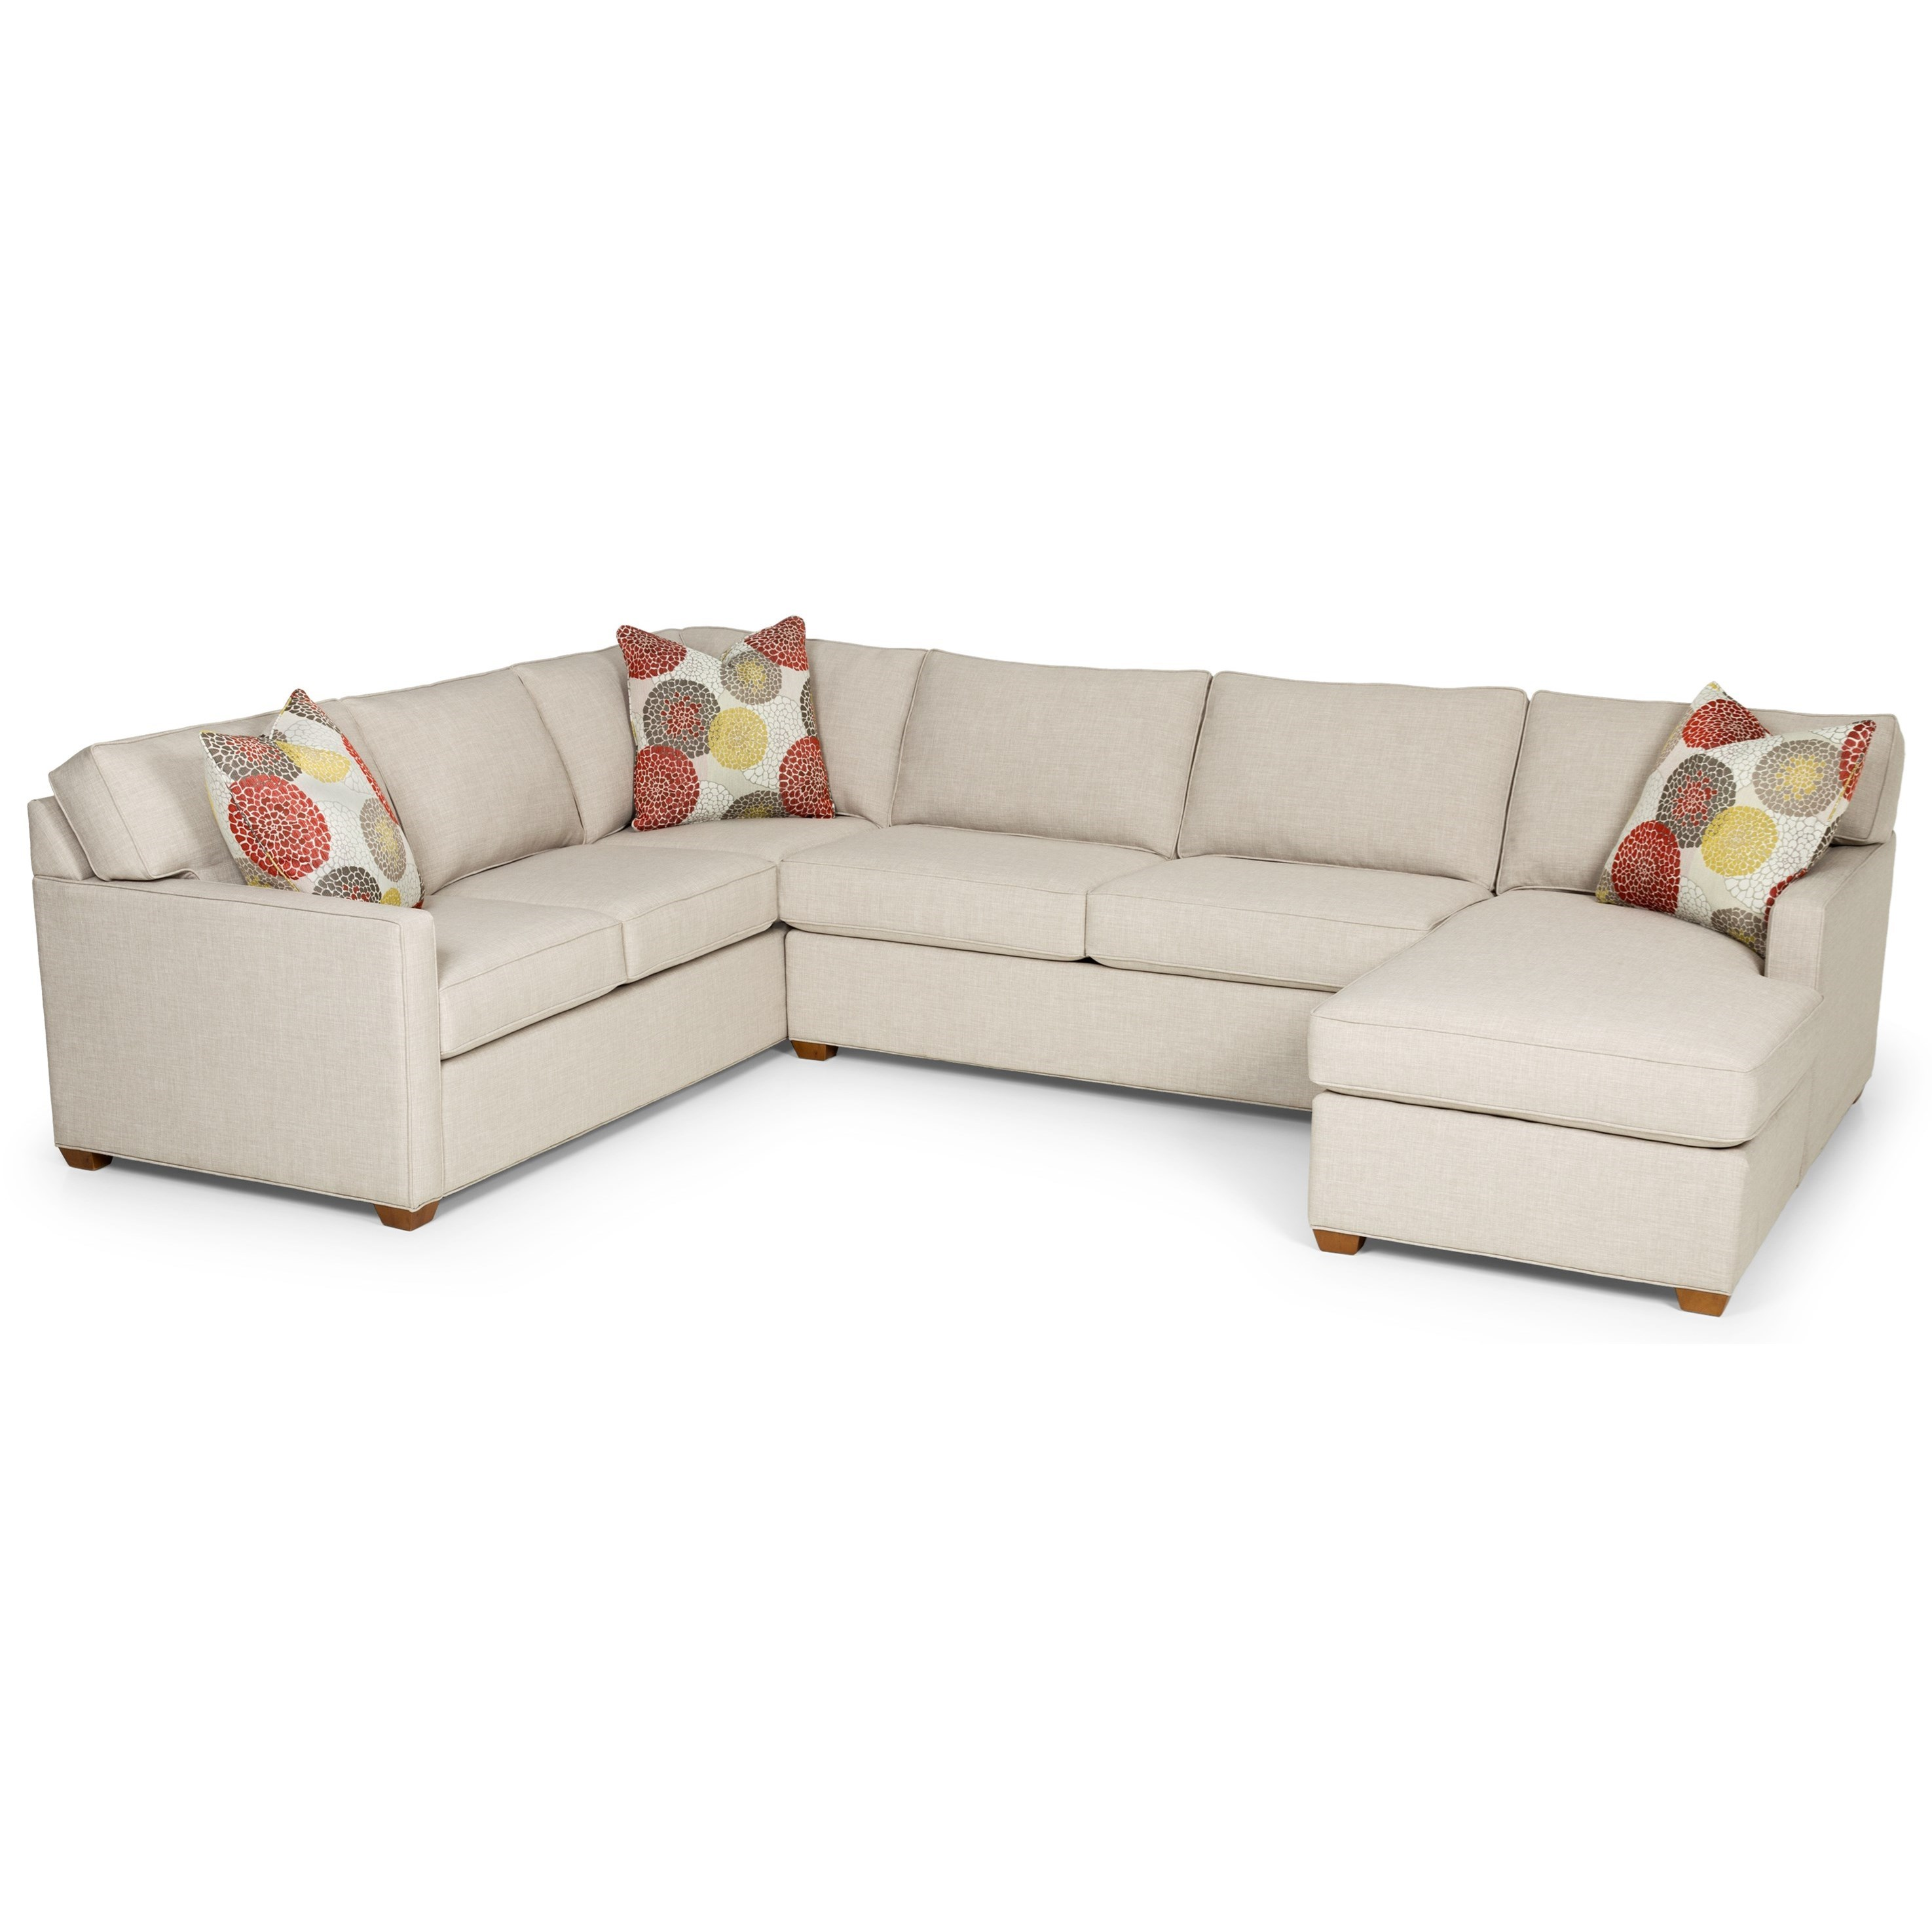 Stanton 287 Sectional Sofa - Item Number: 287-10L+23+21R